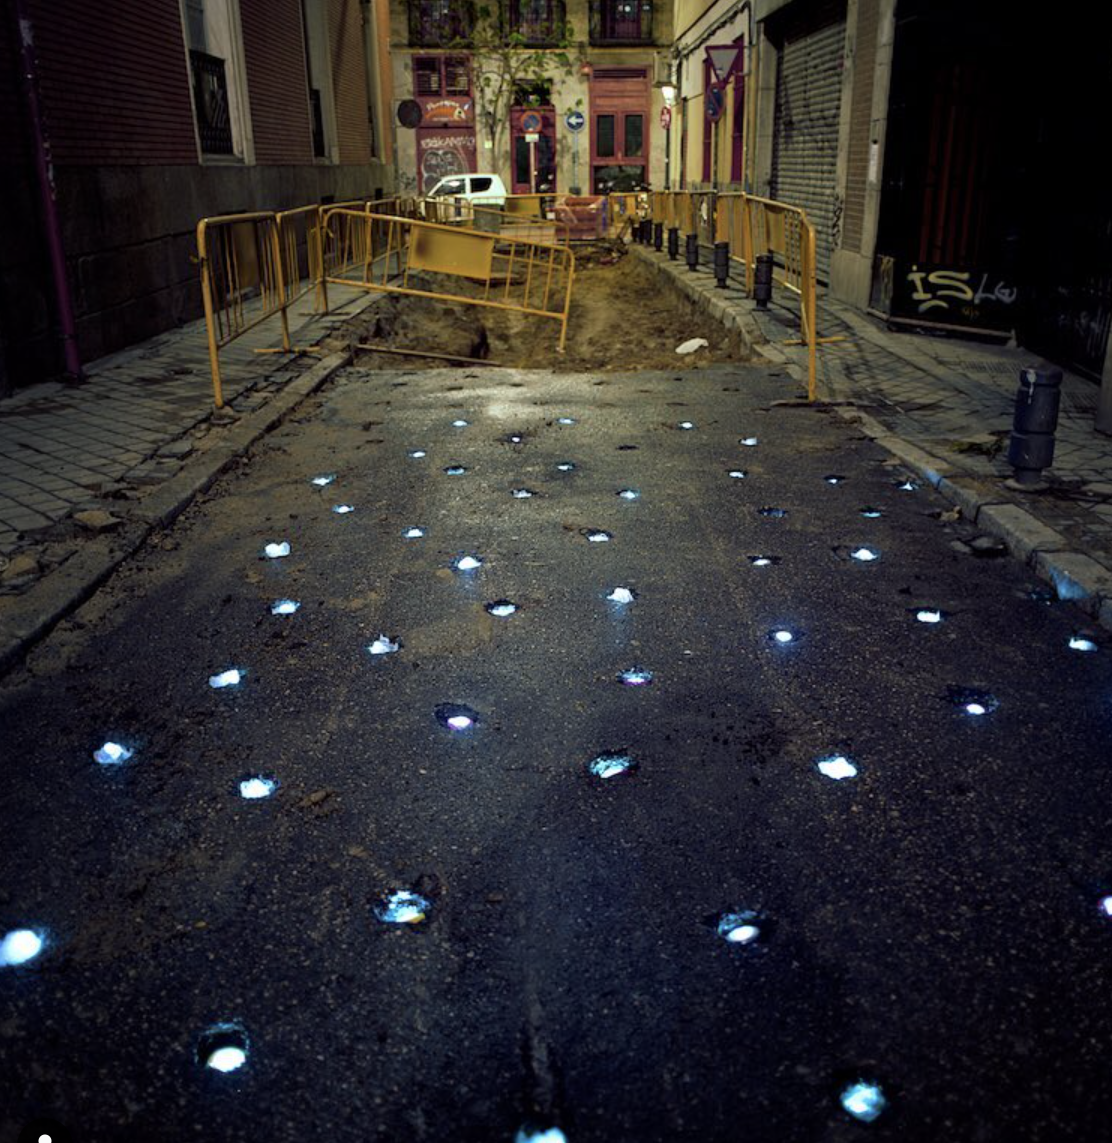 image: 'Luminous Craters' by Luzinterruptus (@luzinterruptus), Madrid, 2009